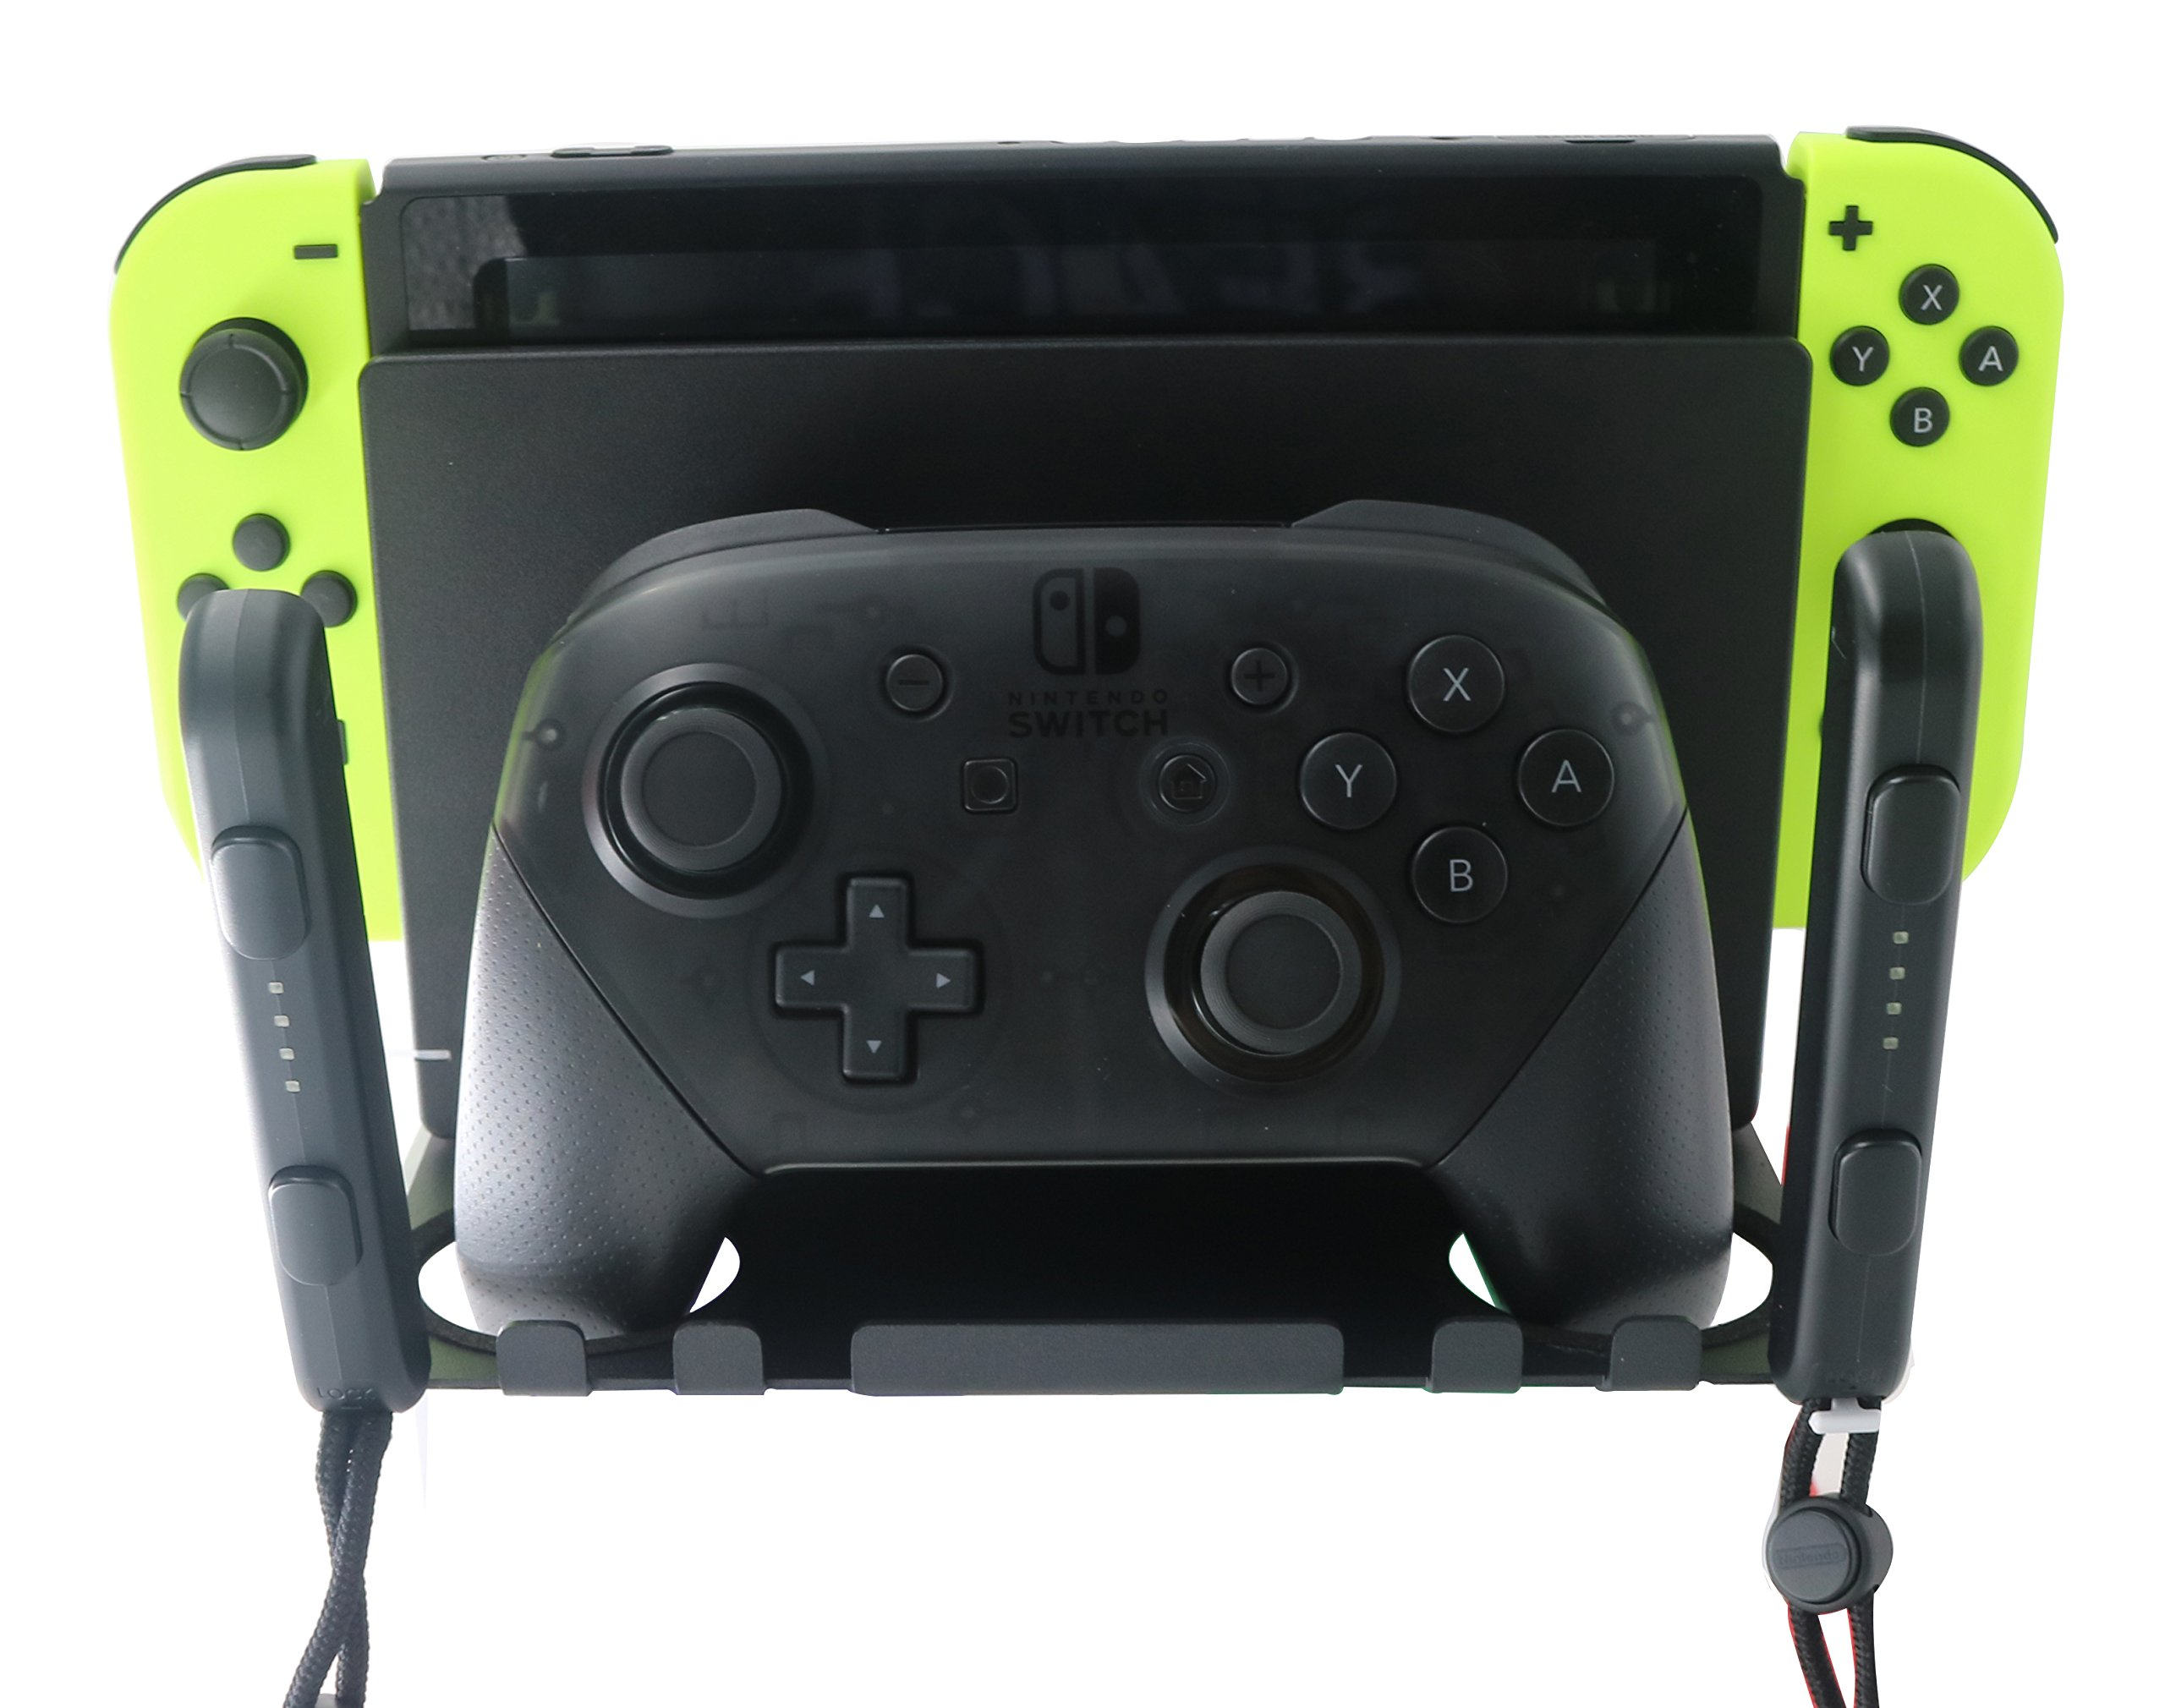 Wall Mount Bracket for Nintendo Switch by J&TOP